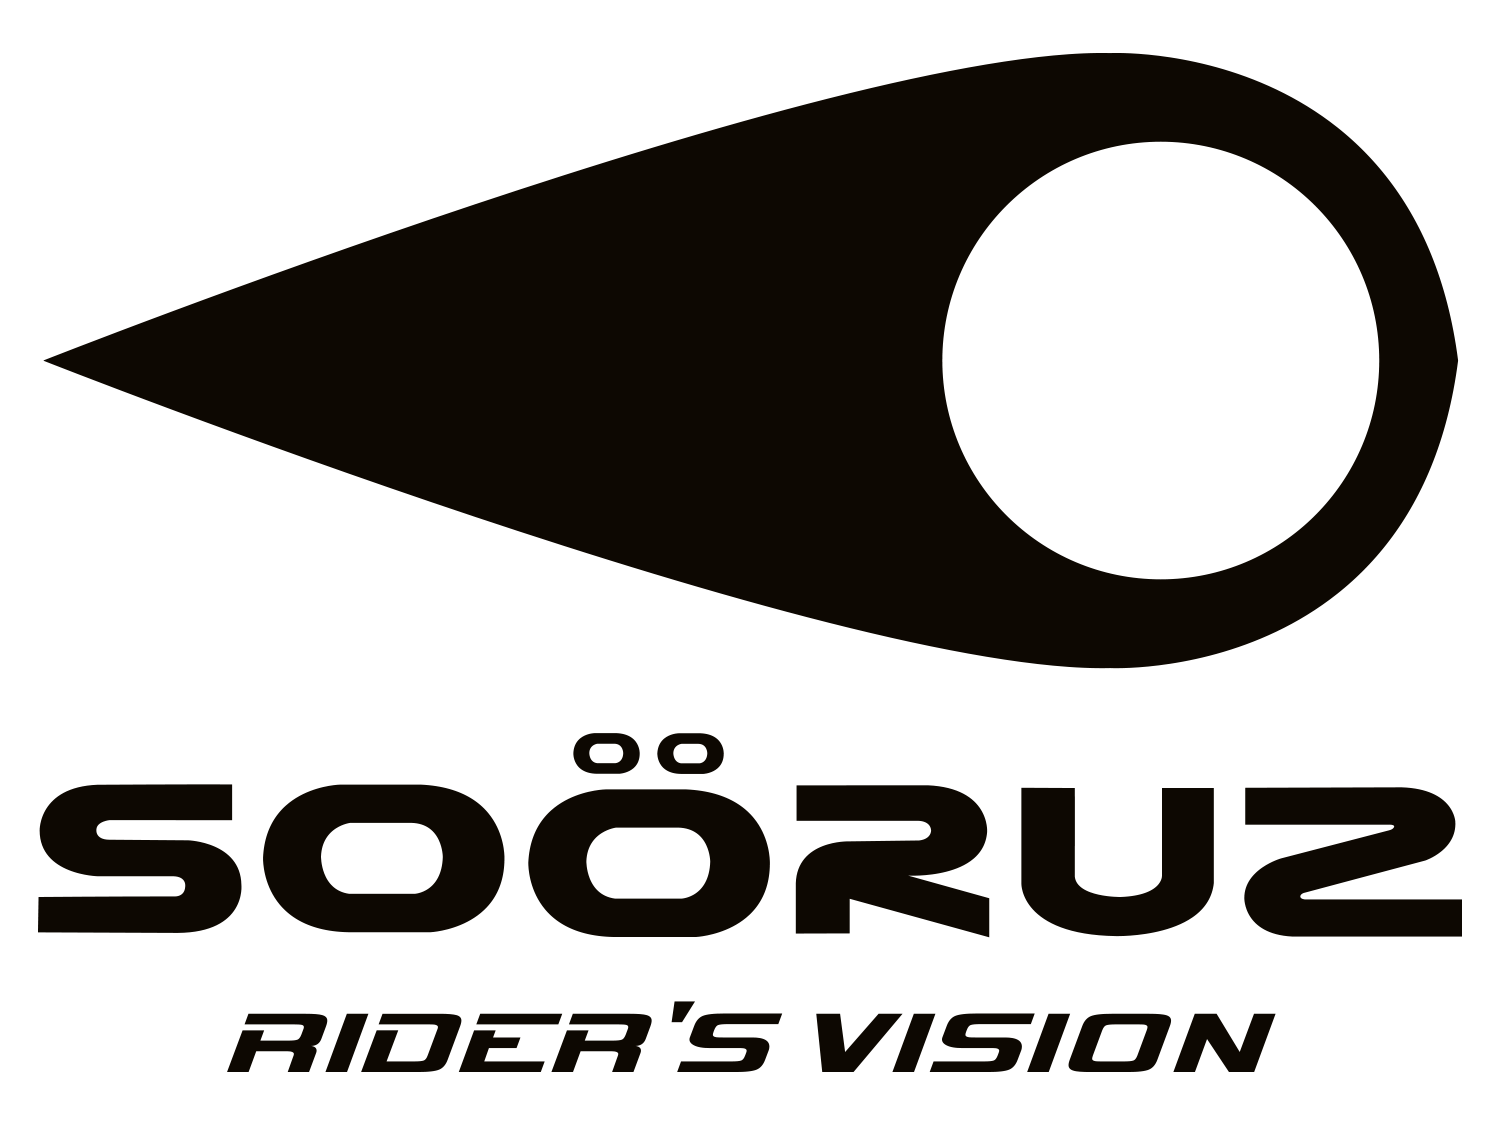 PNG Version - Soöruz Square Logo Black & White - 1500px transparent background